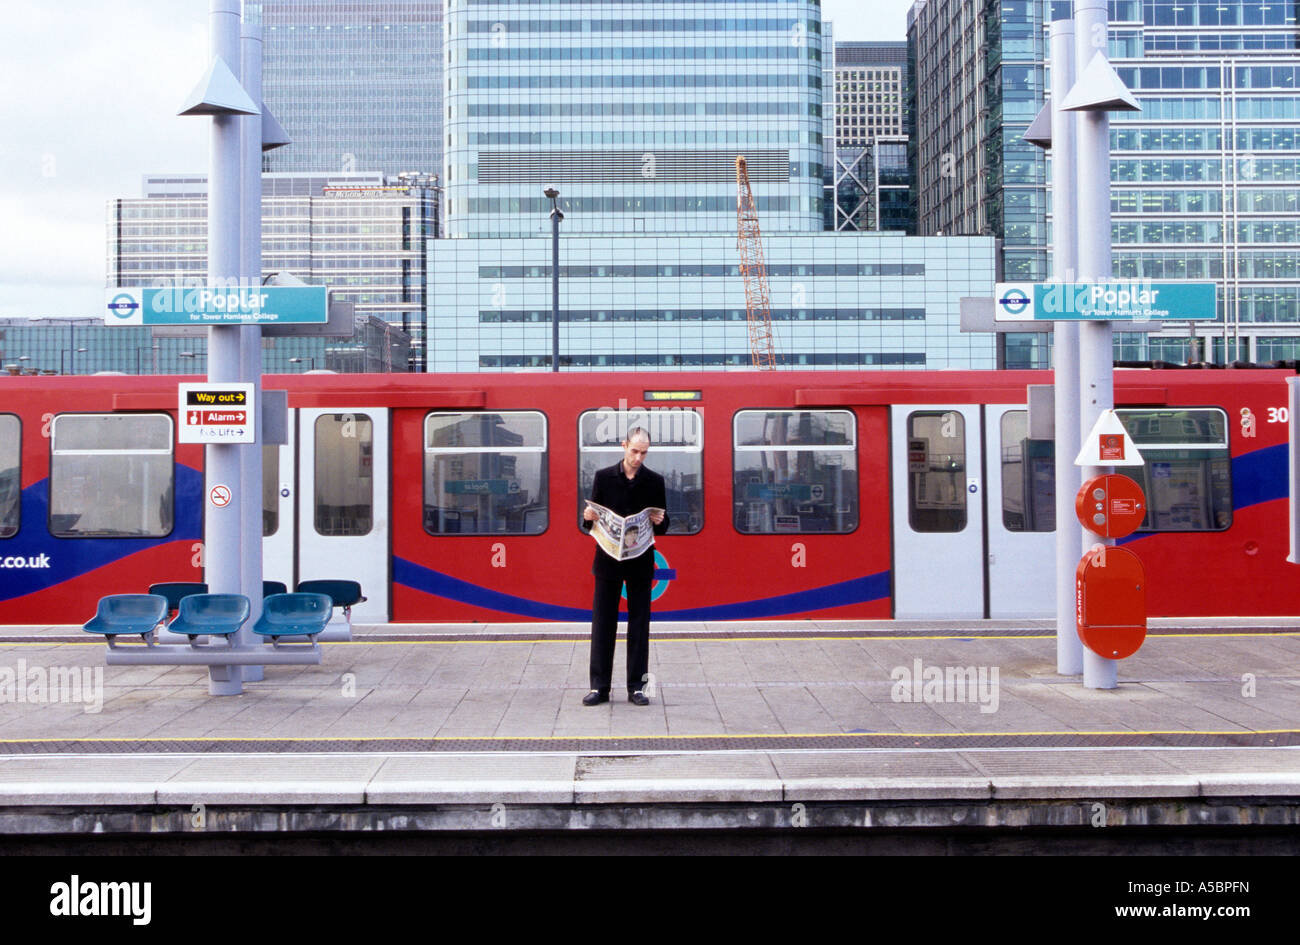 A man reading a newspaper while waiting for the train at the Poplar station in London - Stock Image